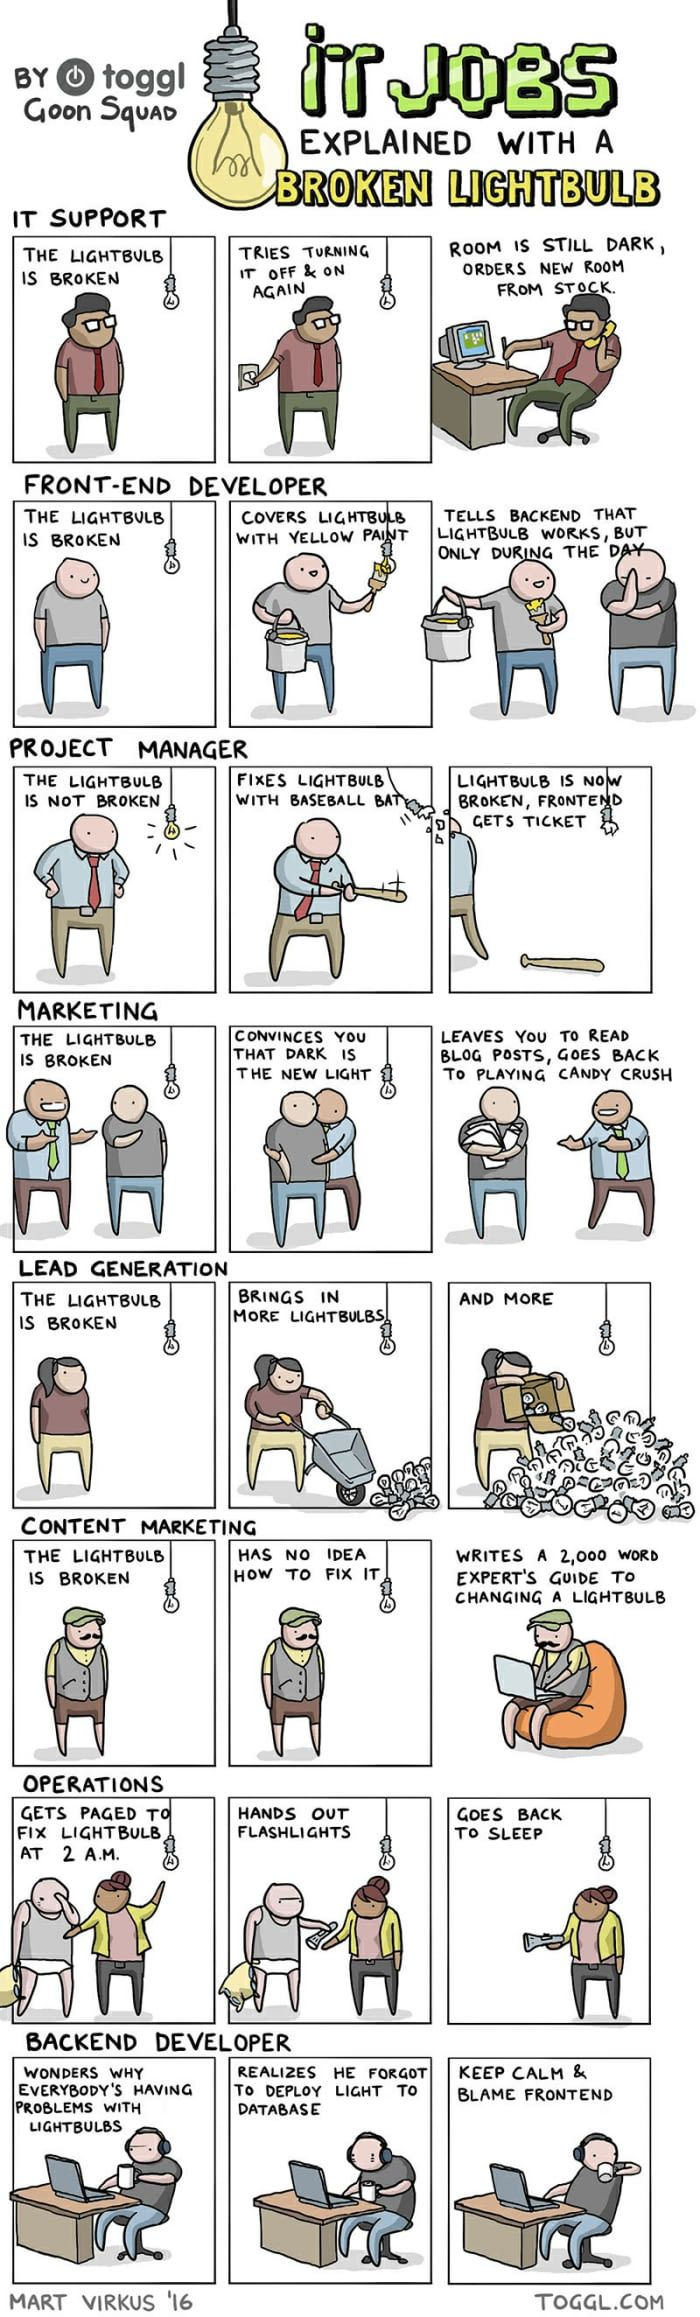 IT jobs explained with a lightbulb